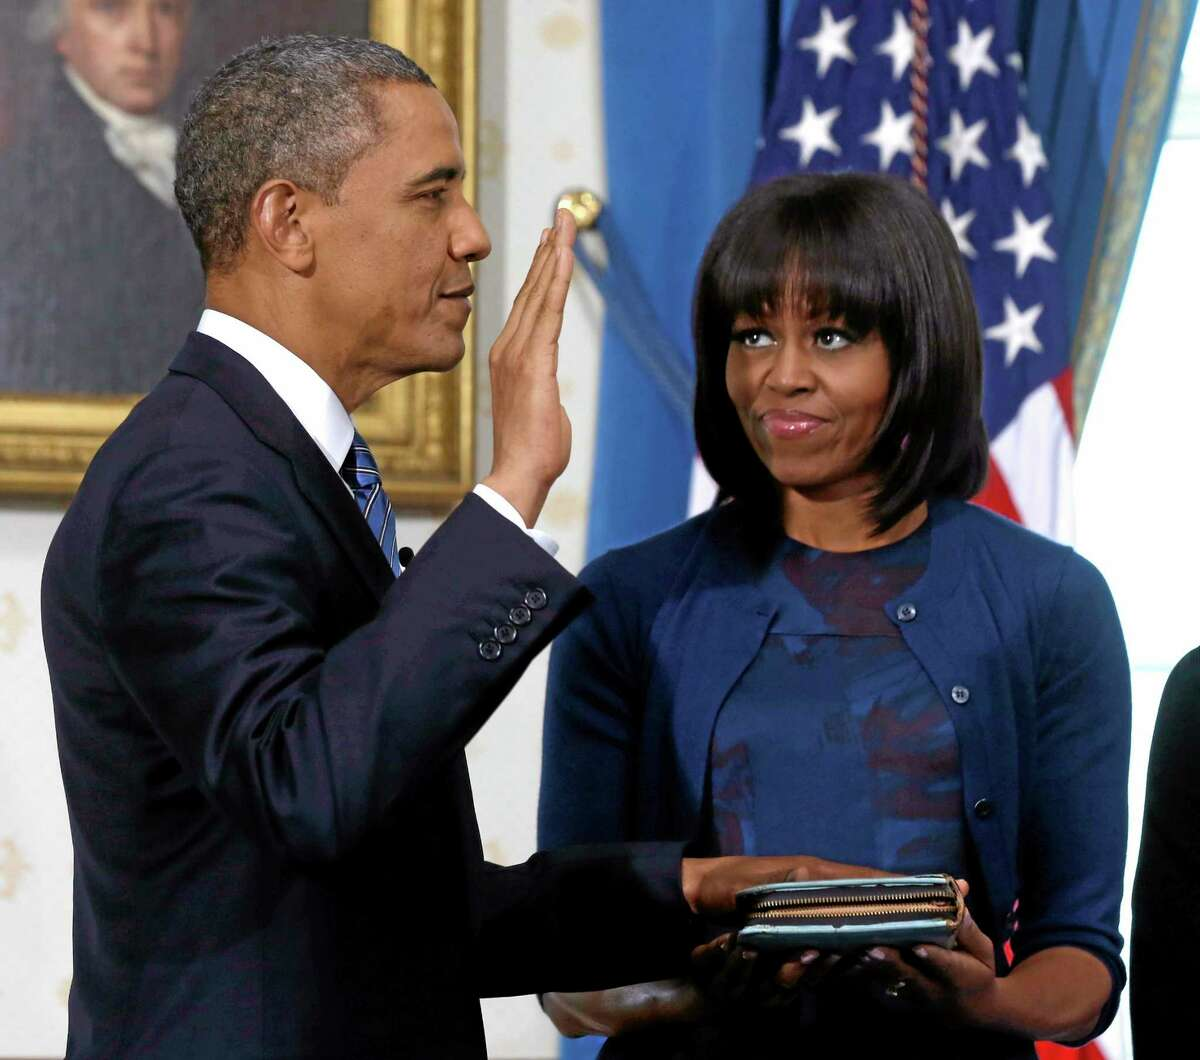 FILE - This Jan. 20, 2013 file-pool photo shows President Barack Obama officially sworn-in by Chief Justice John Roberts, not pictured, in the Blue Room of the White House in Washington, Sunday, Jan. 20, 2013, as first lady Michelle Obama, holds the Robinson Family Bible. It was a moment for Barack Obama to savor. His second inaugural address over, Obama paused as he strode from the podium last January, turning back for one last glance across the expanse of the National Mall, where a supportive throng stood in the winter chill to witness the launch of his new term.